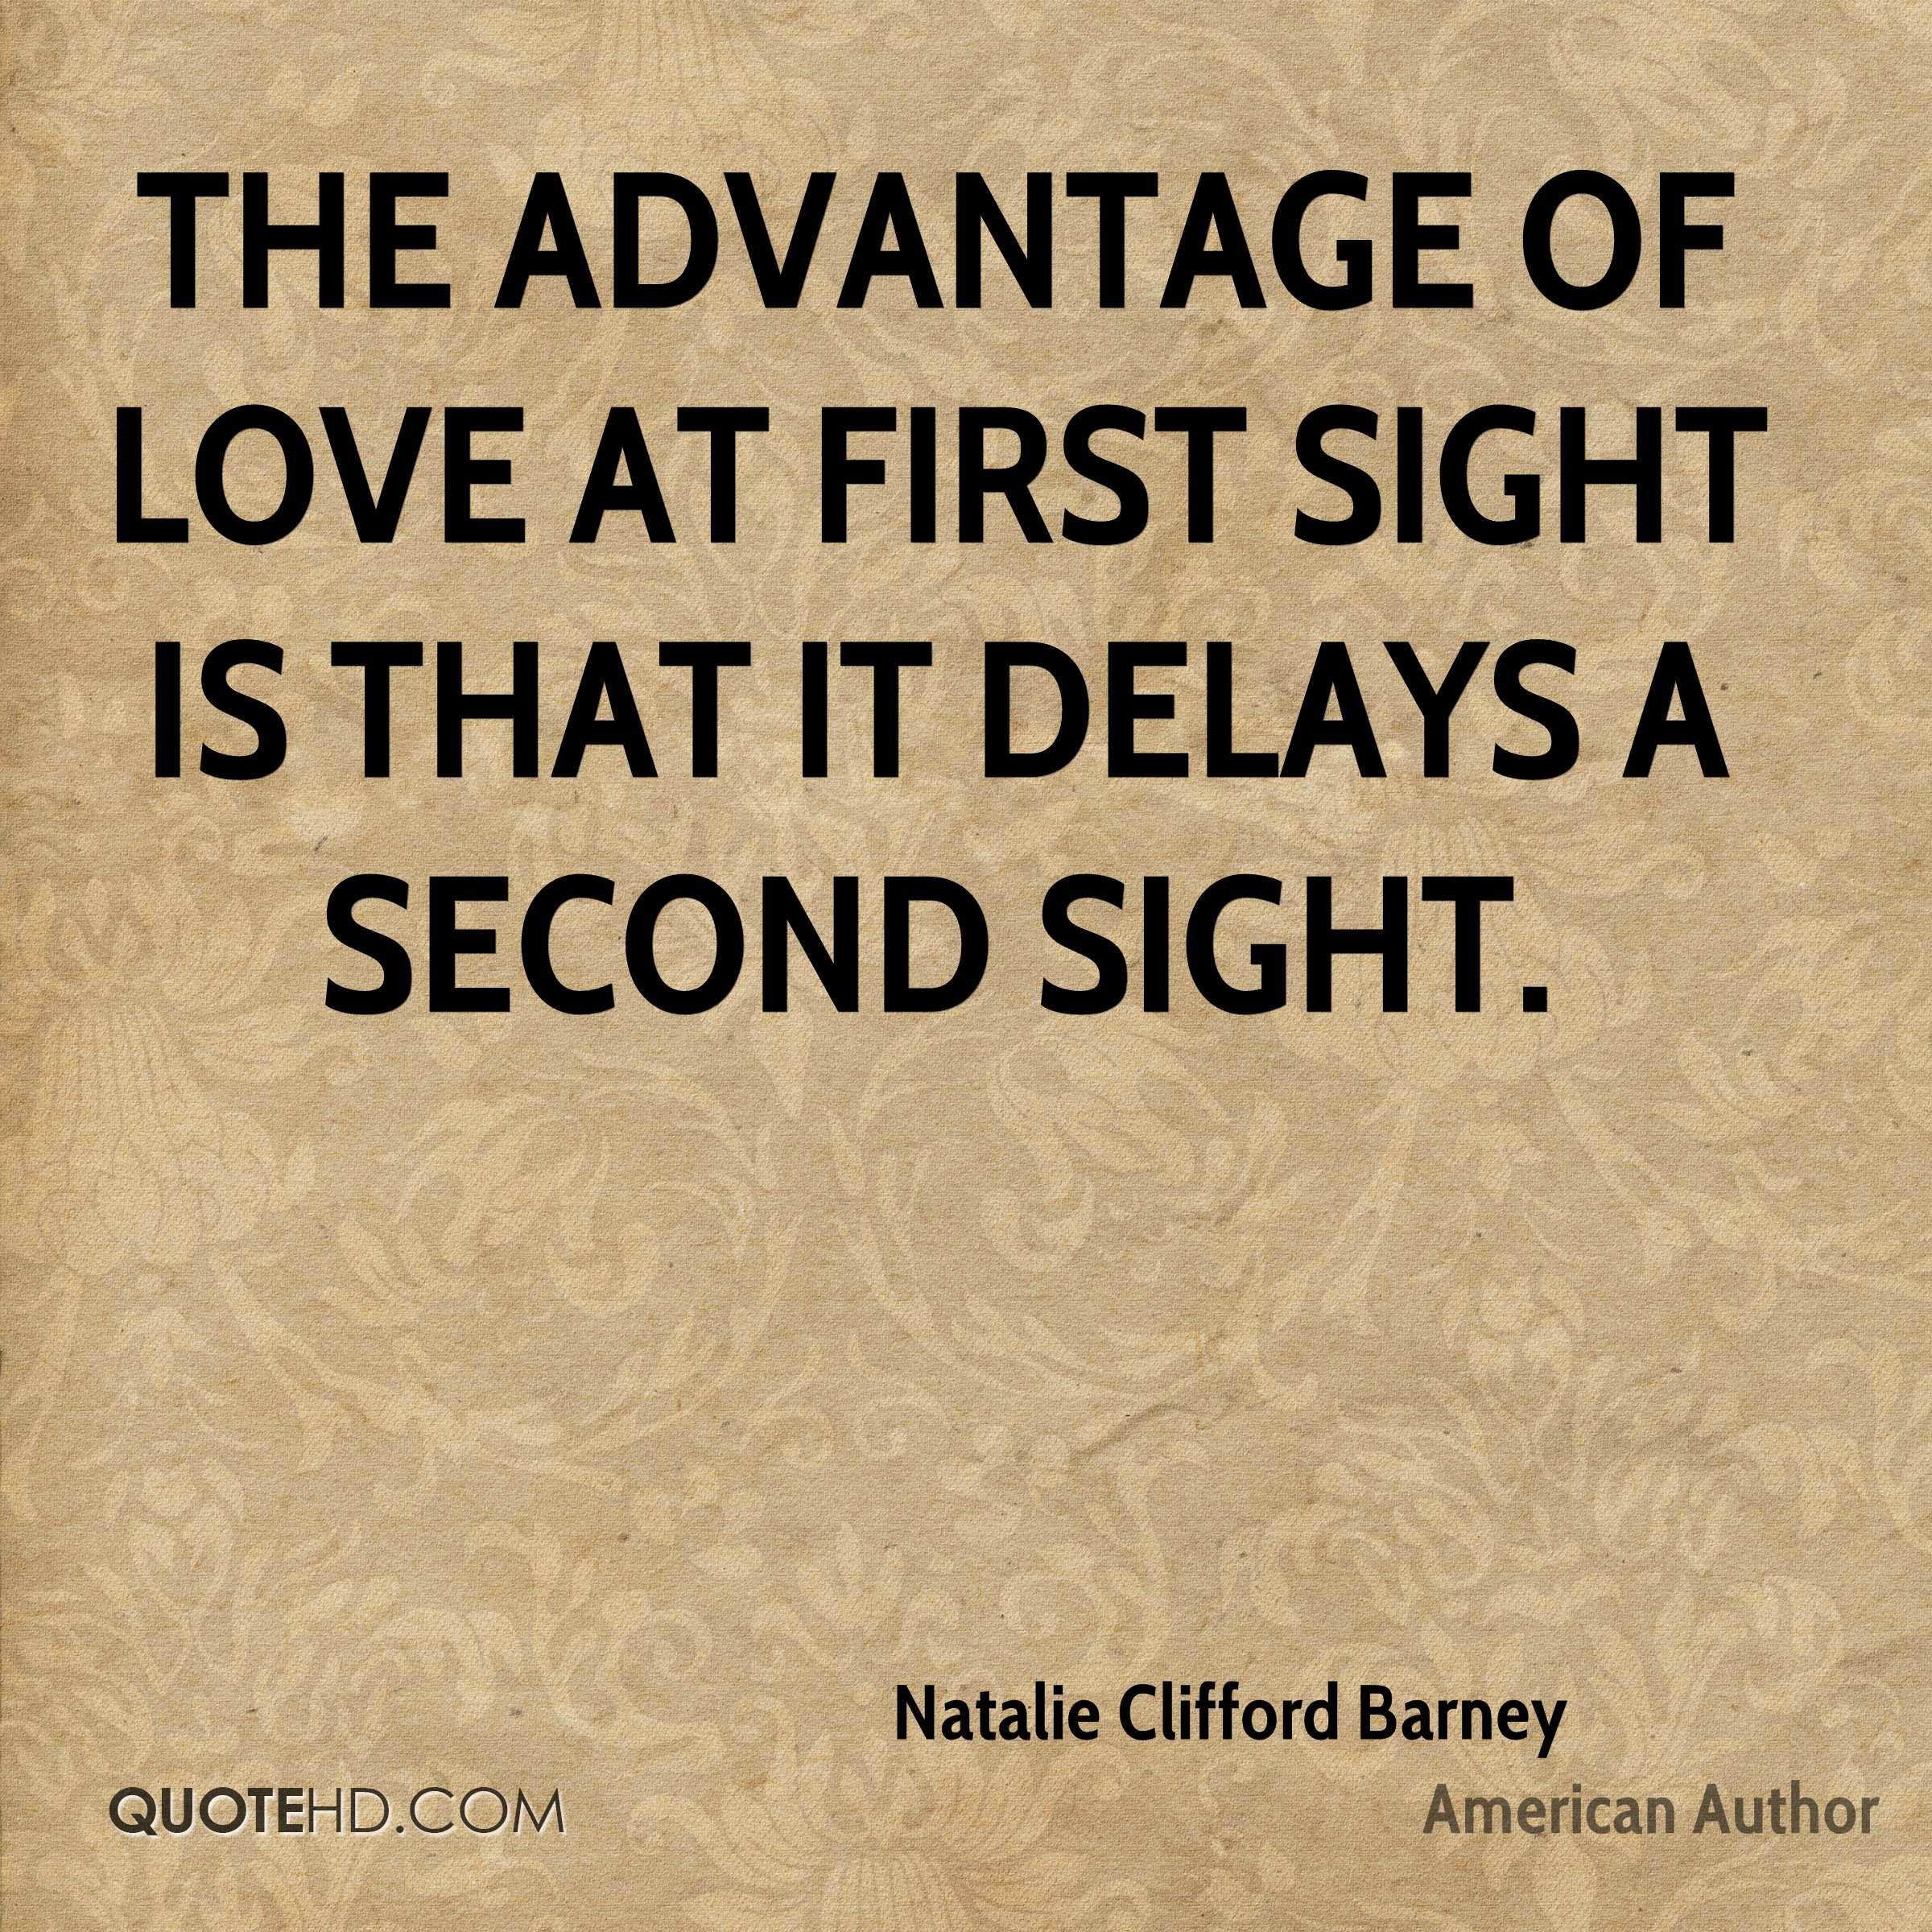 The advantage of love at first sight is that it delays a second sight